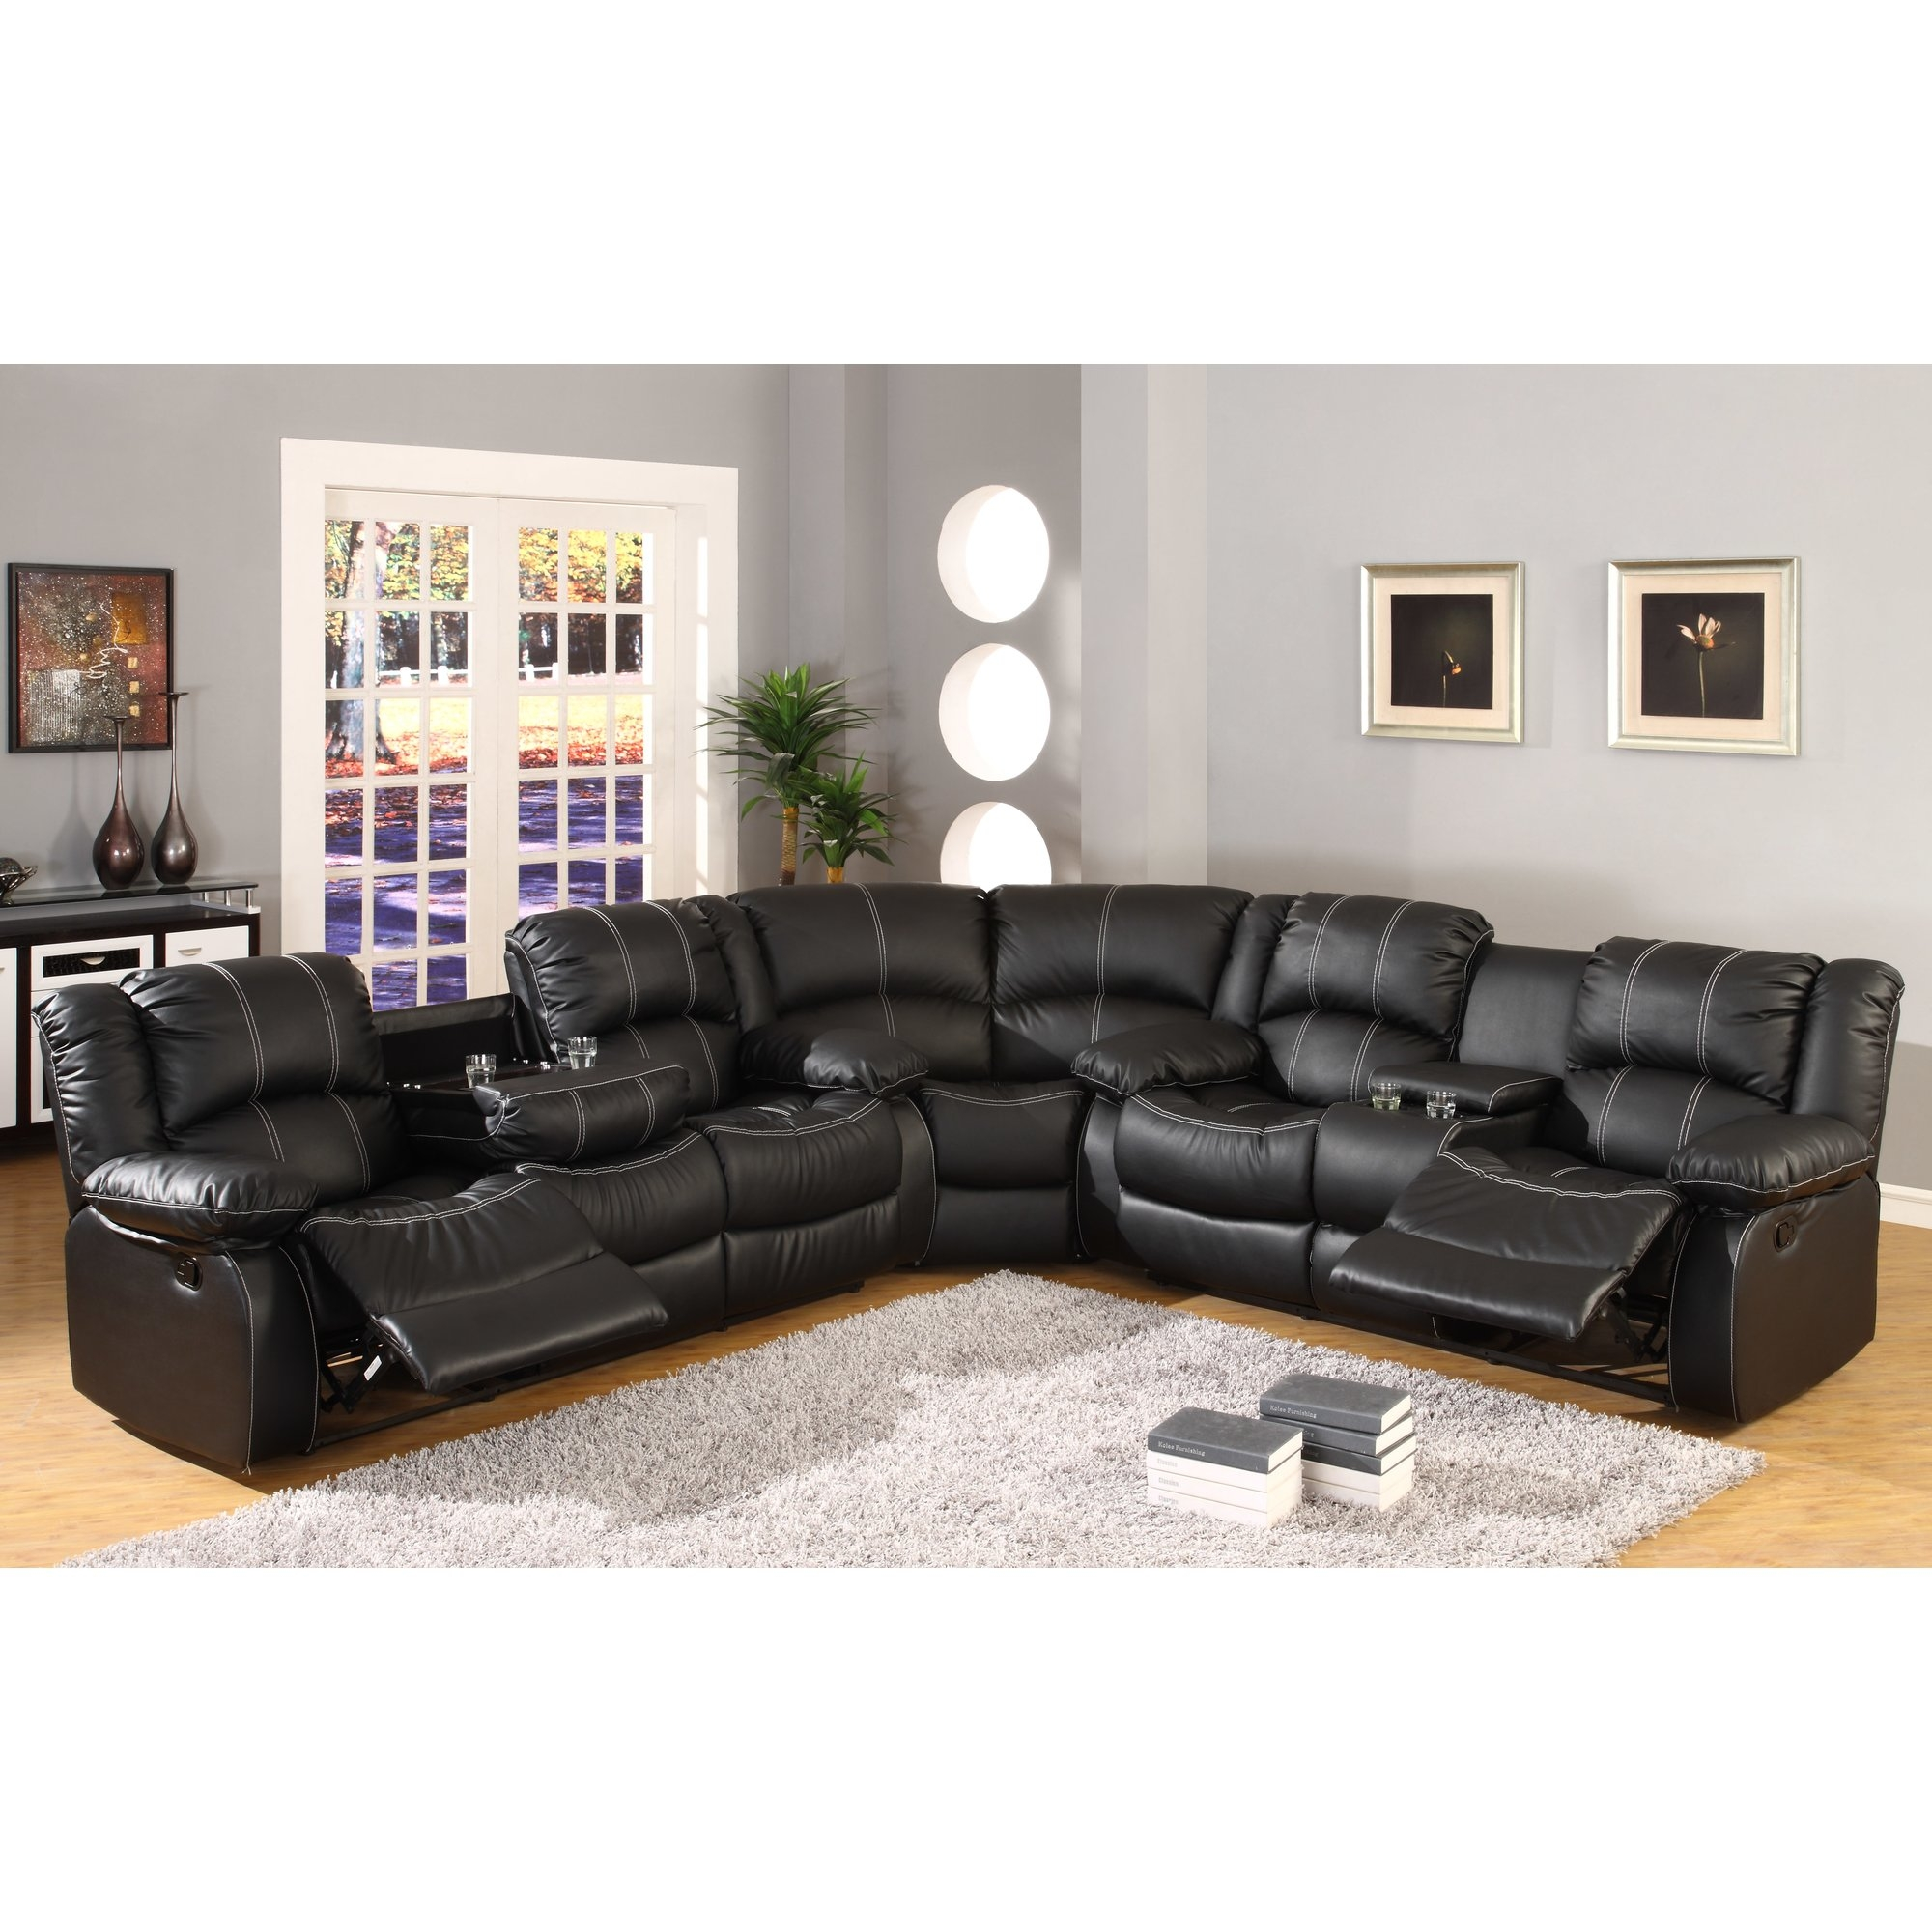 Ultimate Accents Reclining Curved Sectional Reviews Wayfair Intended For Curved Sectional Sofa With Recliner (Image 15 of 15)